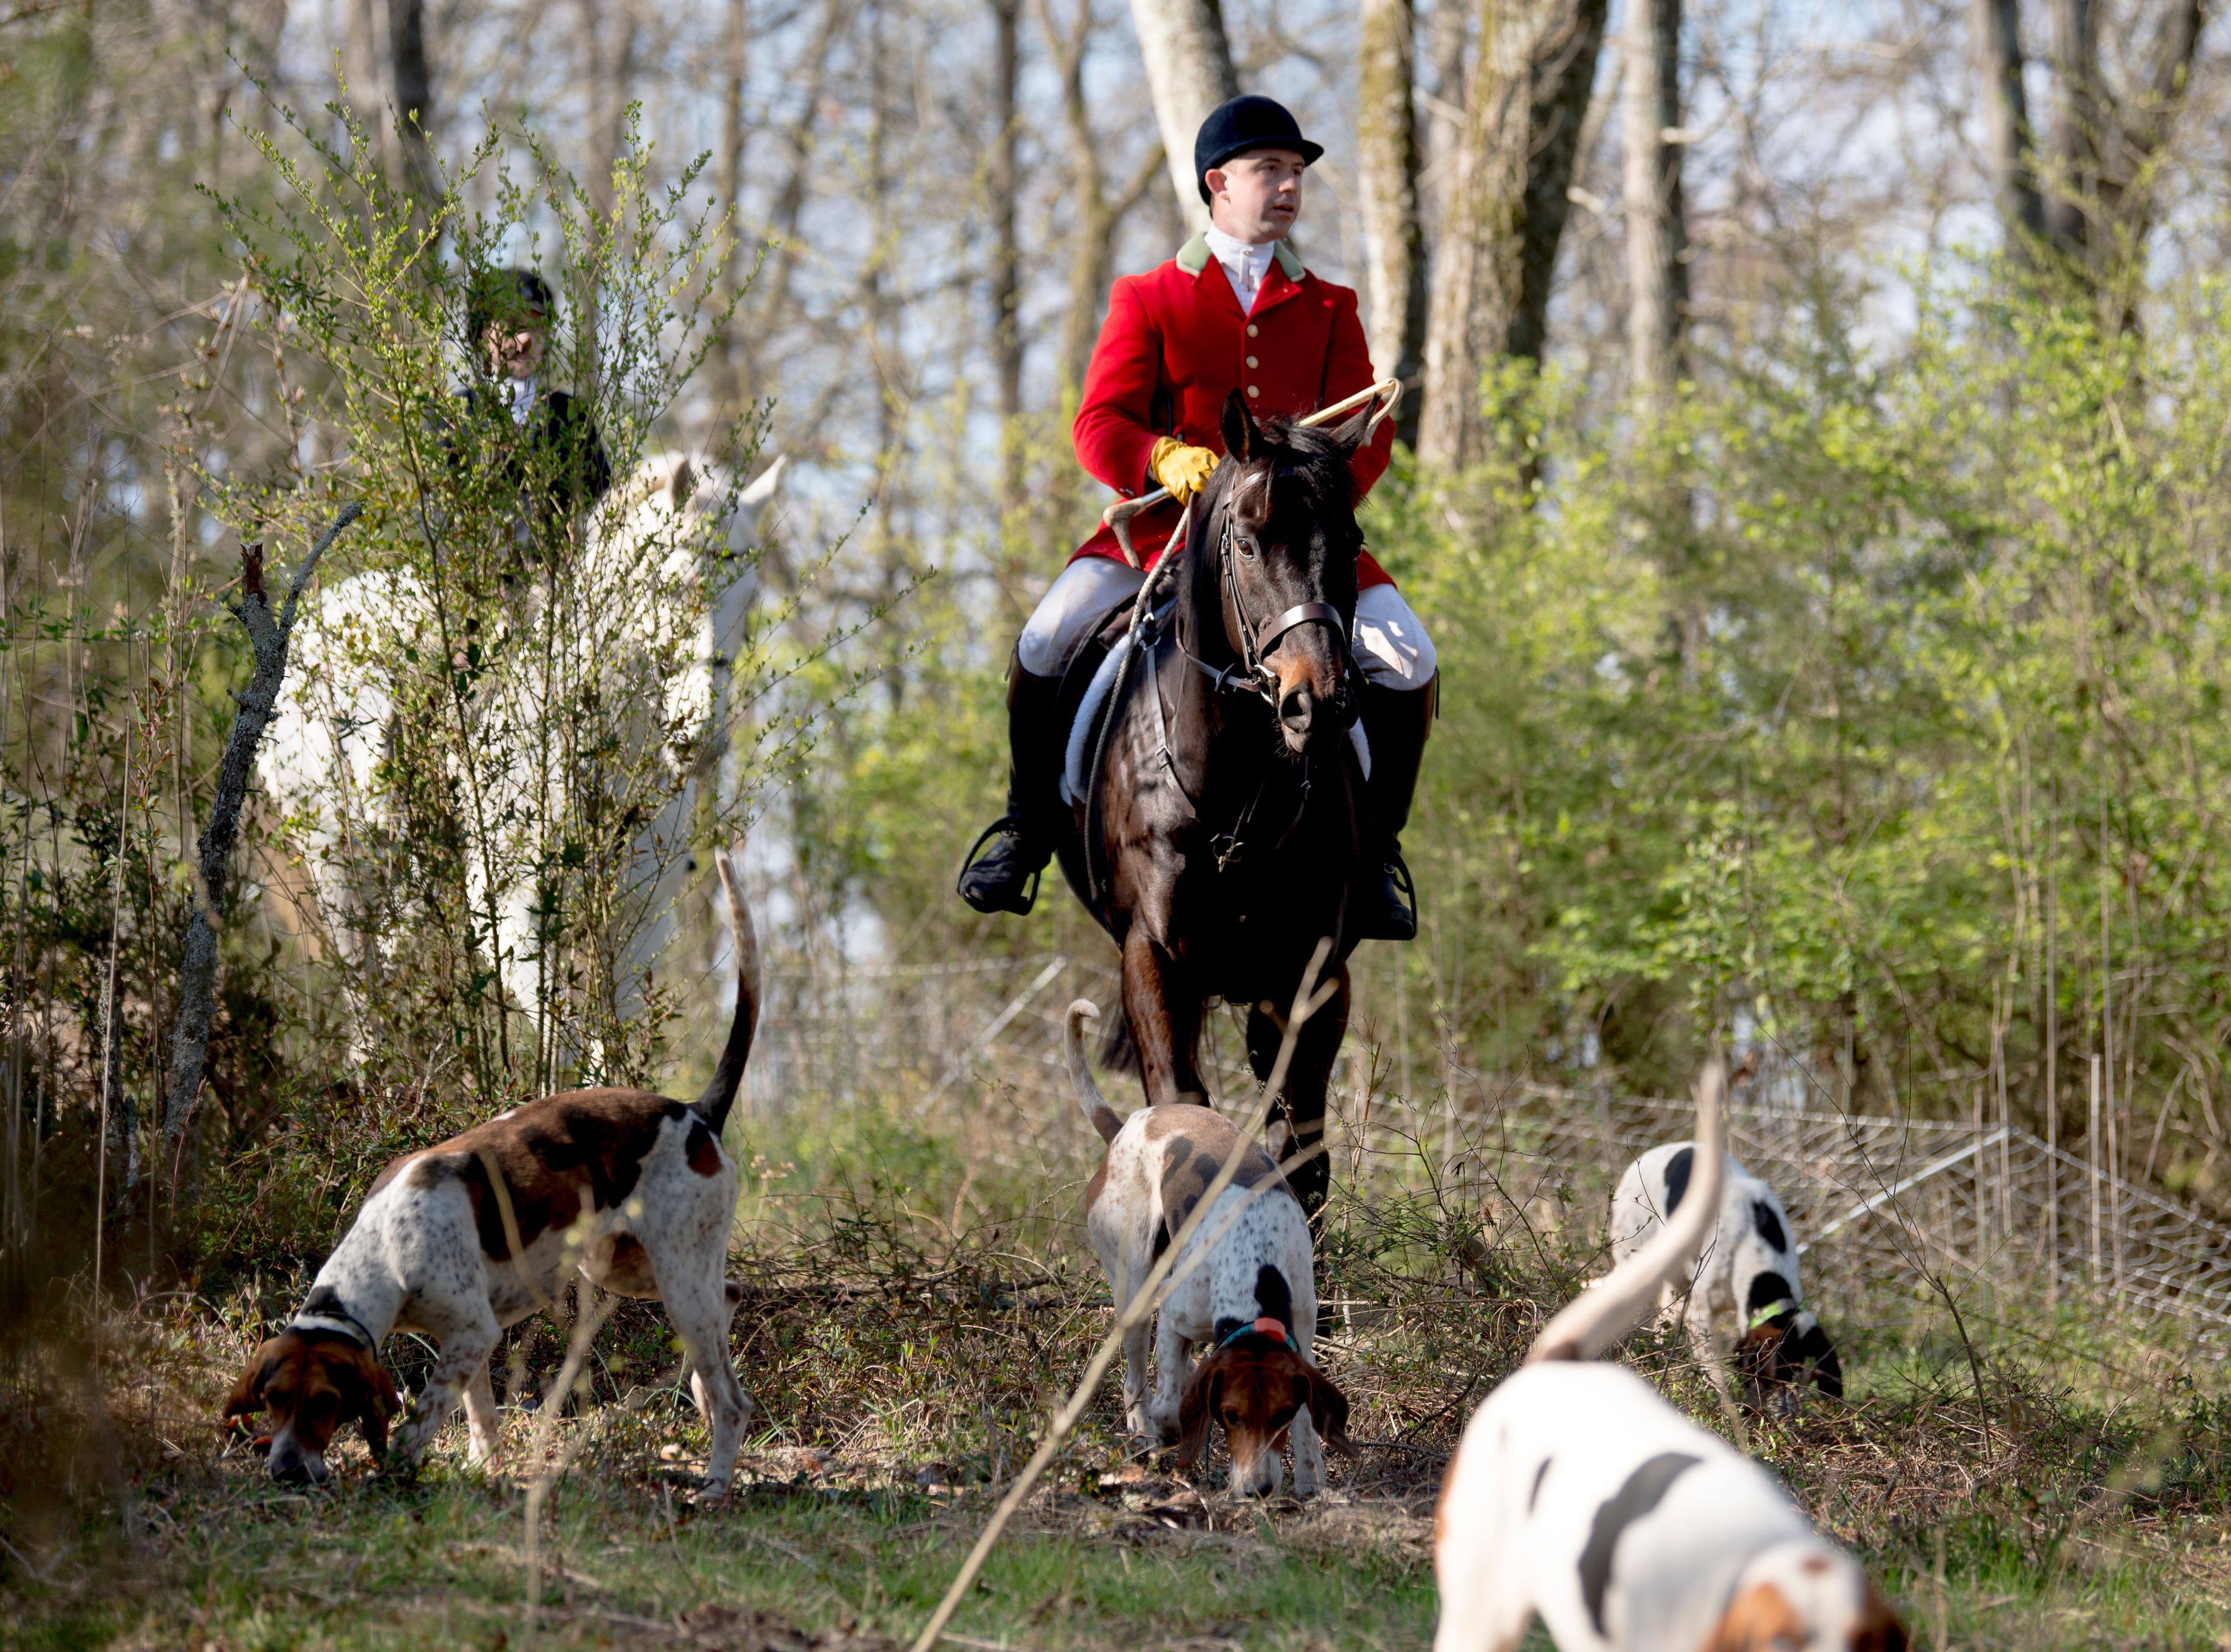 TVH Master Huntsman Ryan Johnsey and first flight member Jeanie Seaman, in back, lead a group foxhounds through the woods during a fixture at Riverplains Farm in Strawberry Plains, Tennessee on Wednesday, March 27, 2019.